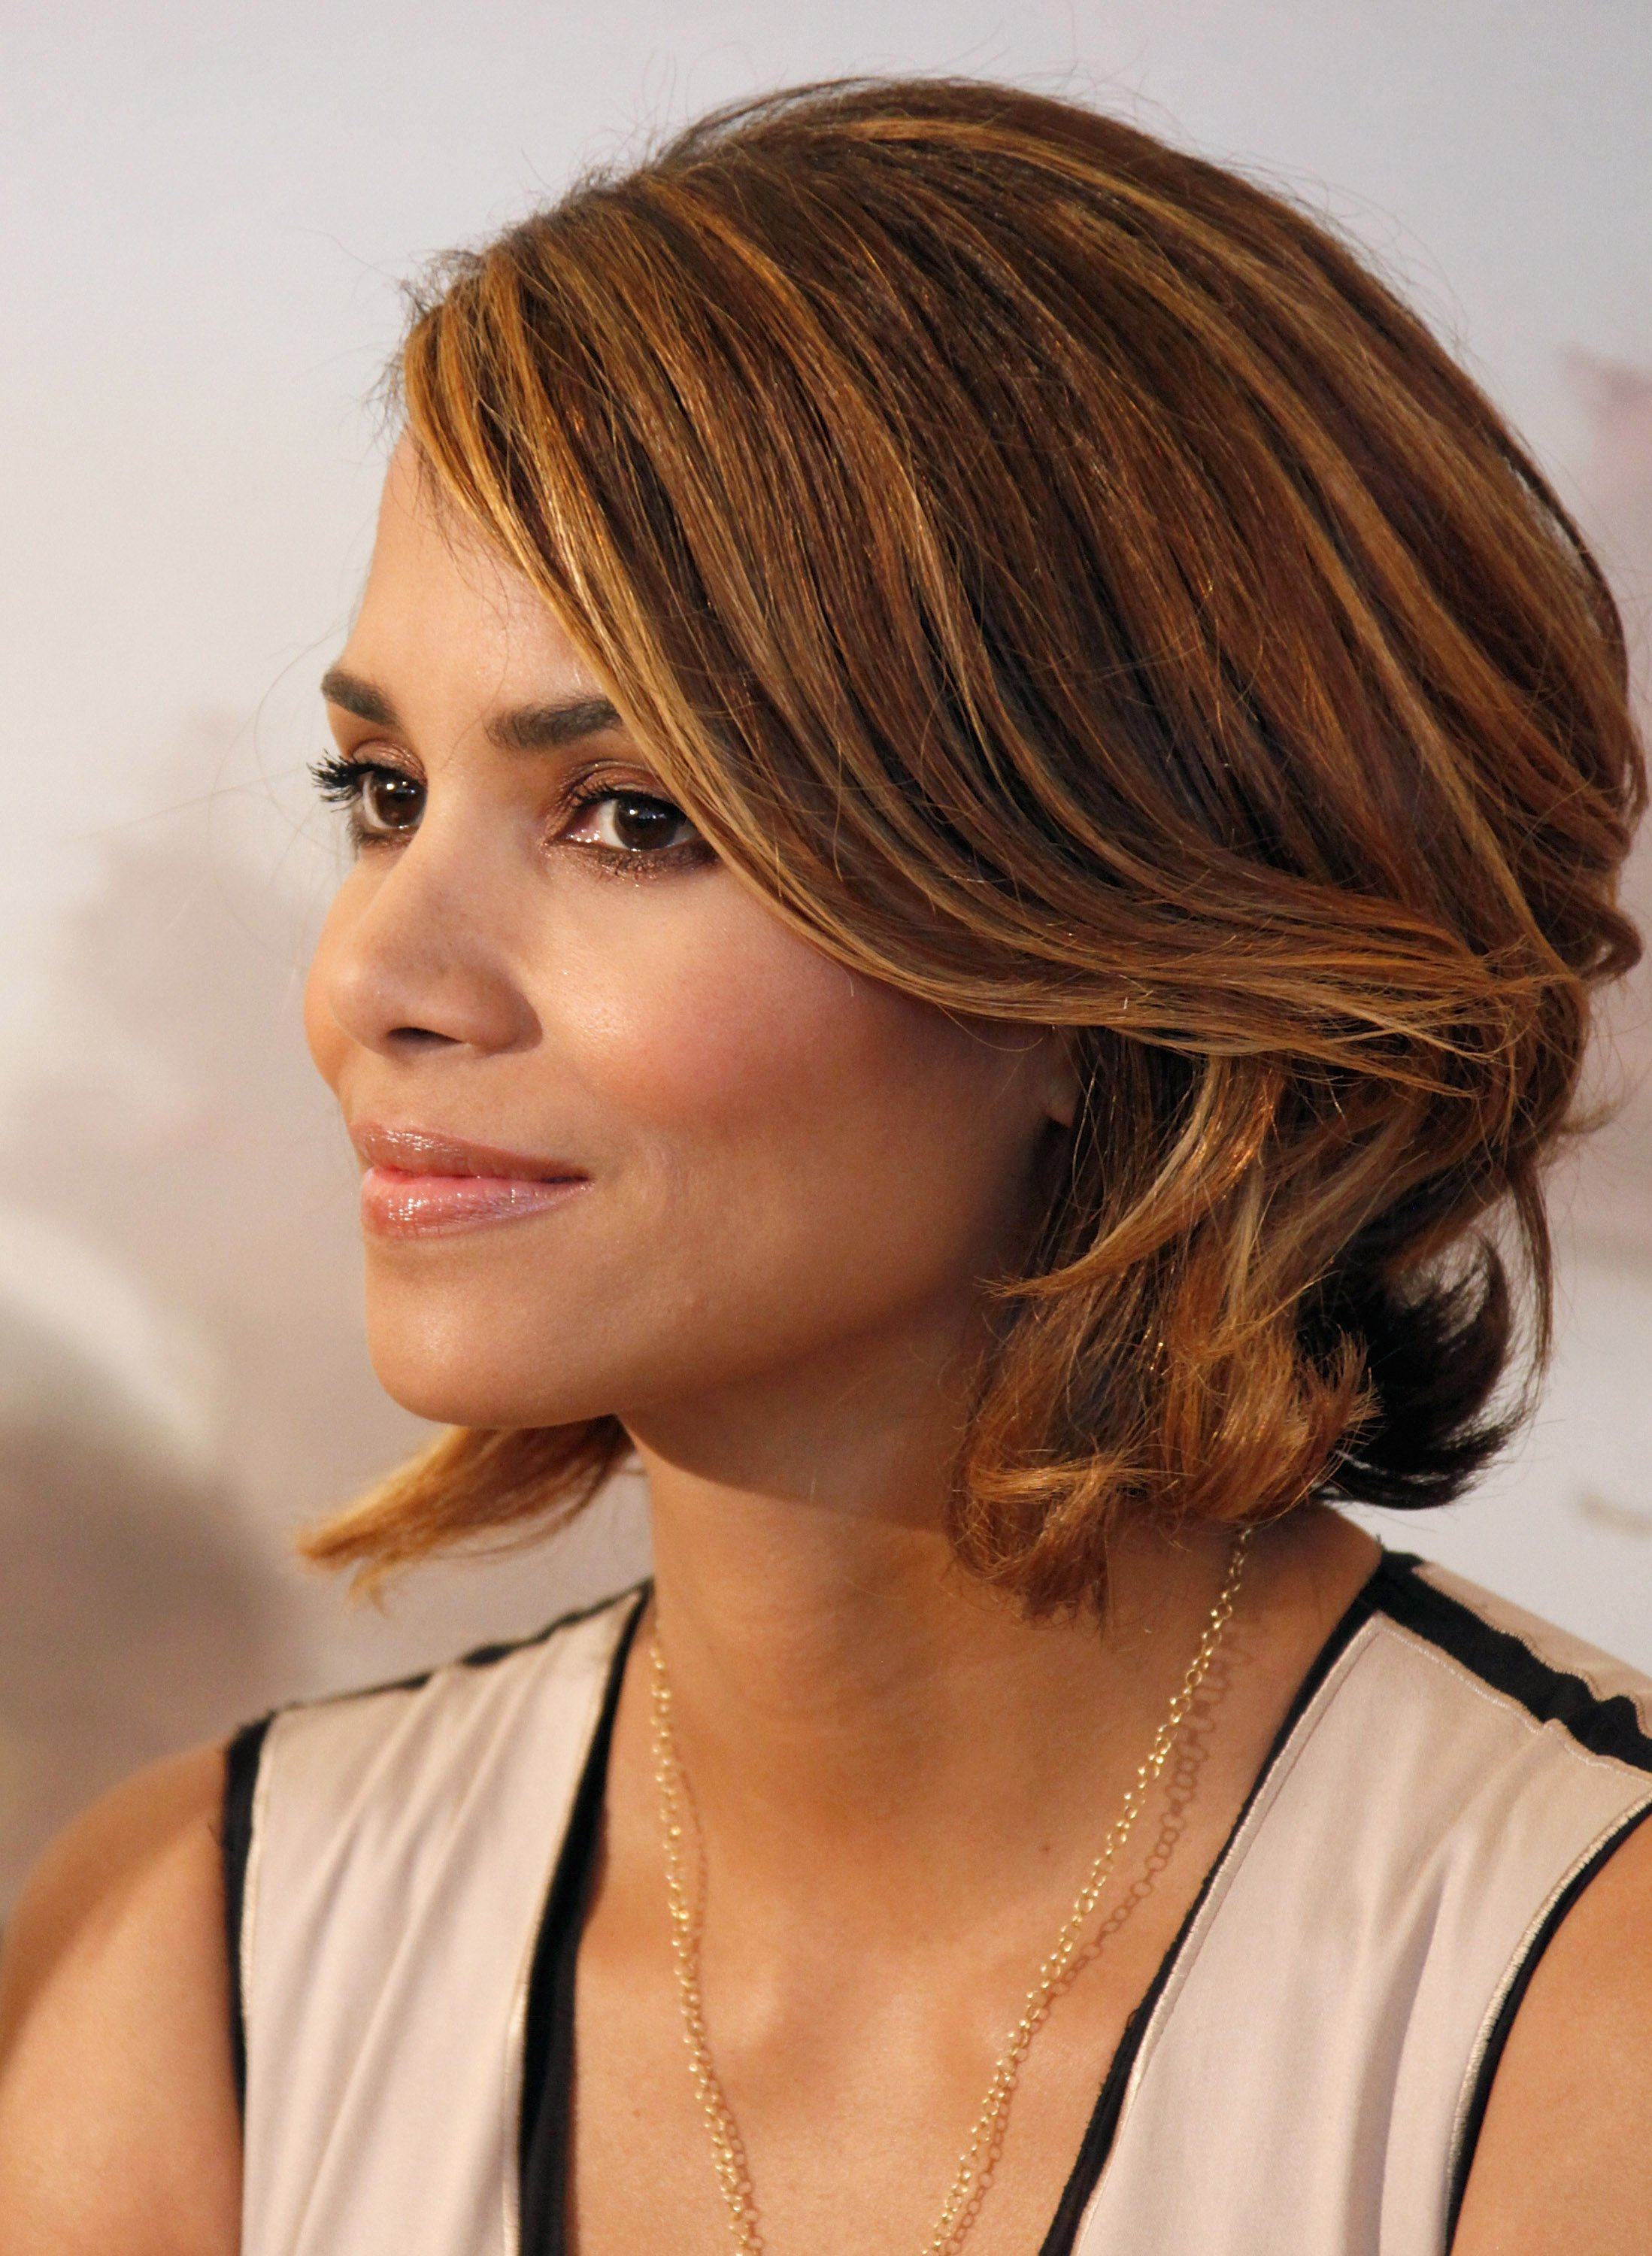 59483_Halle_Berry_2009_Jenesse_Silver_Rose_Gala_Auction_in_Beverly_Hills_126_122_539lo.jpg